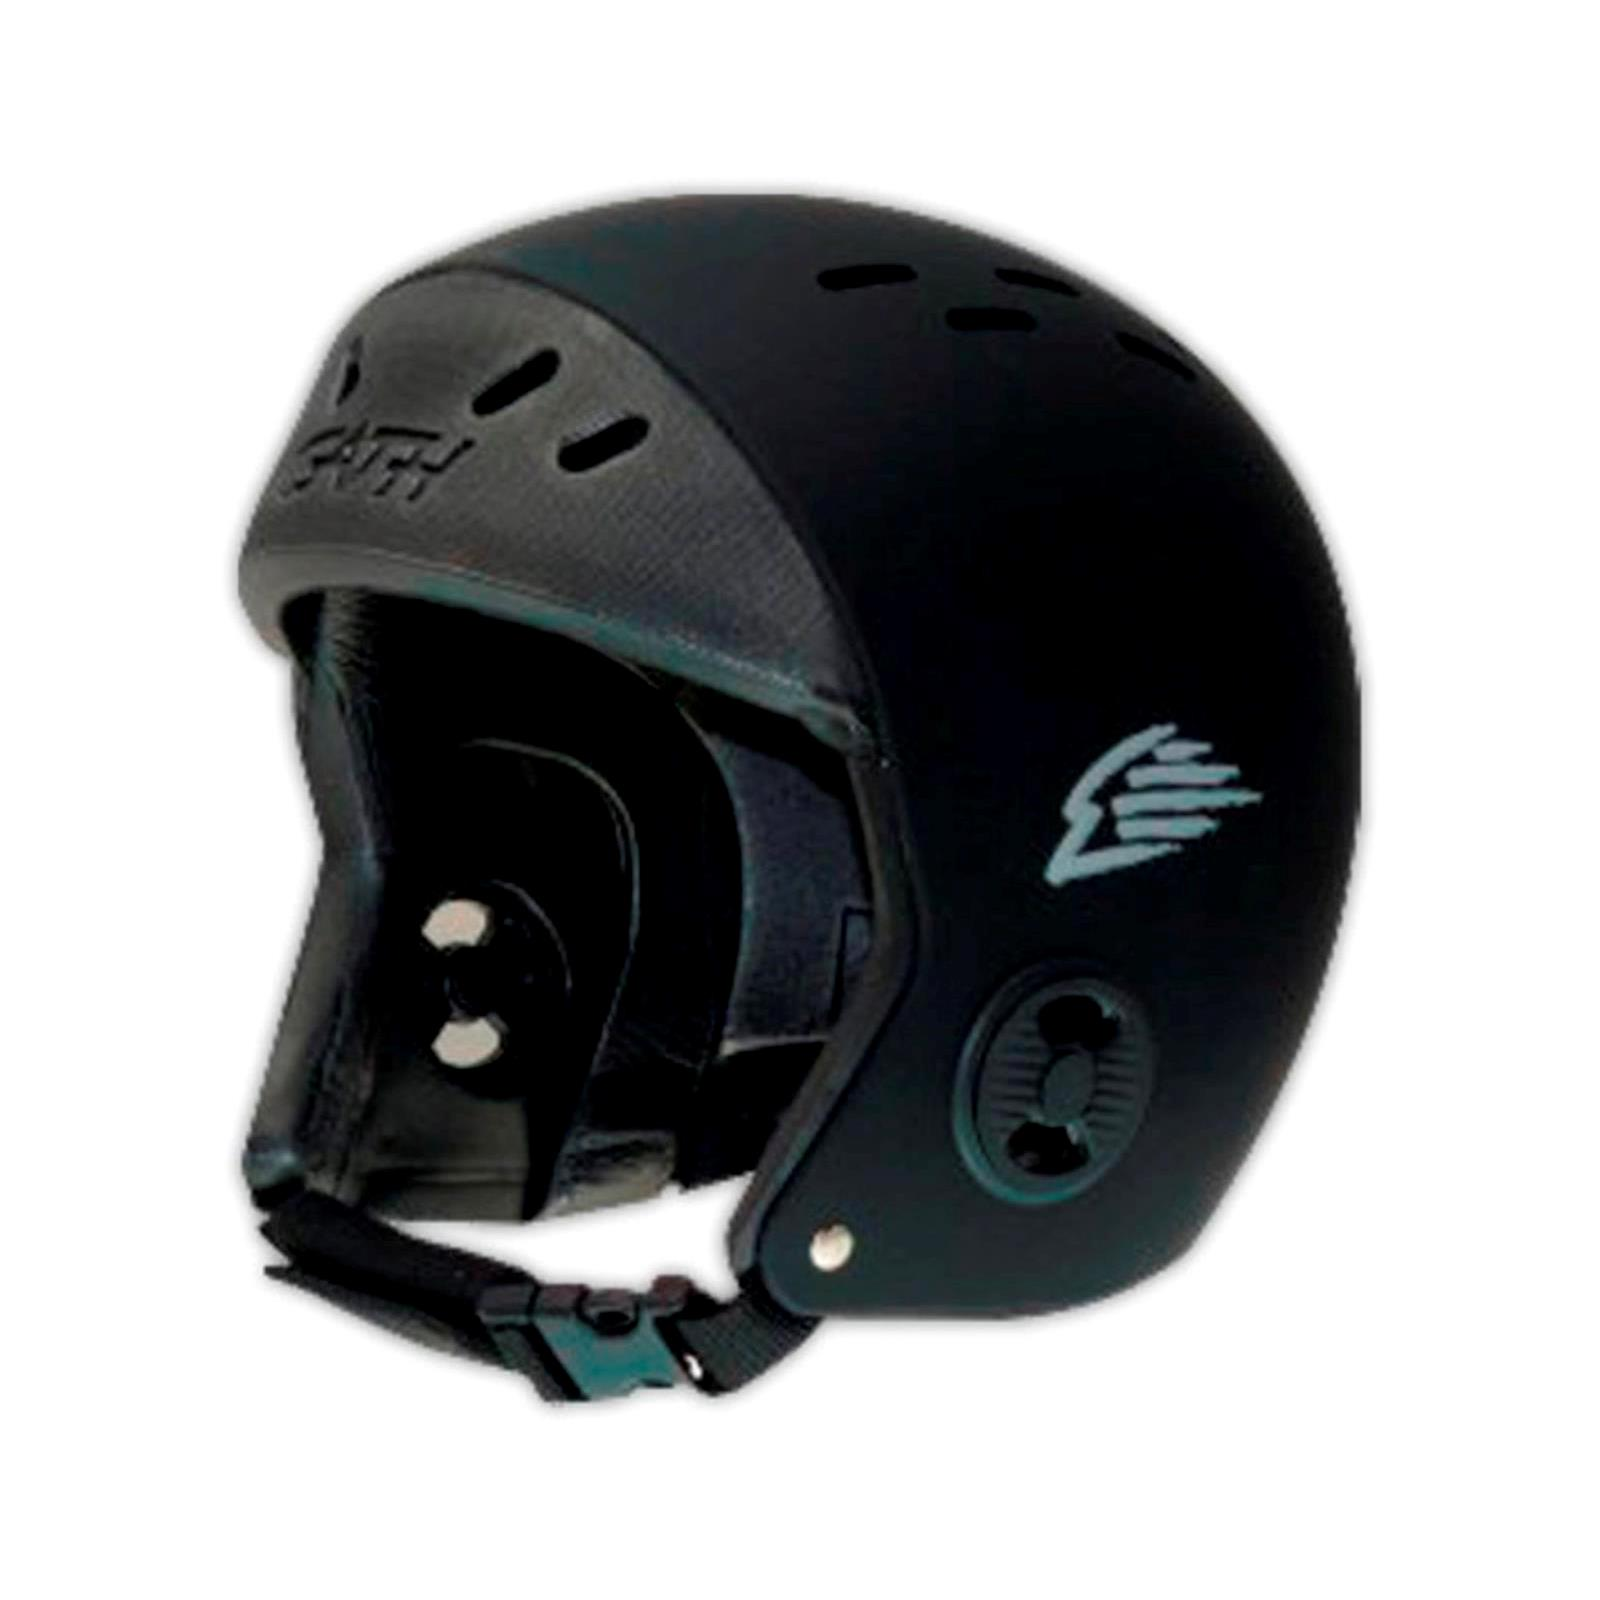 GATH Helm Standard XL black